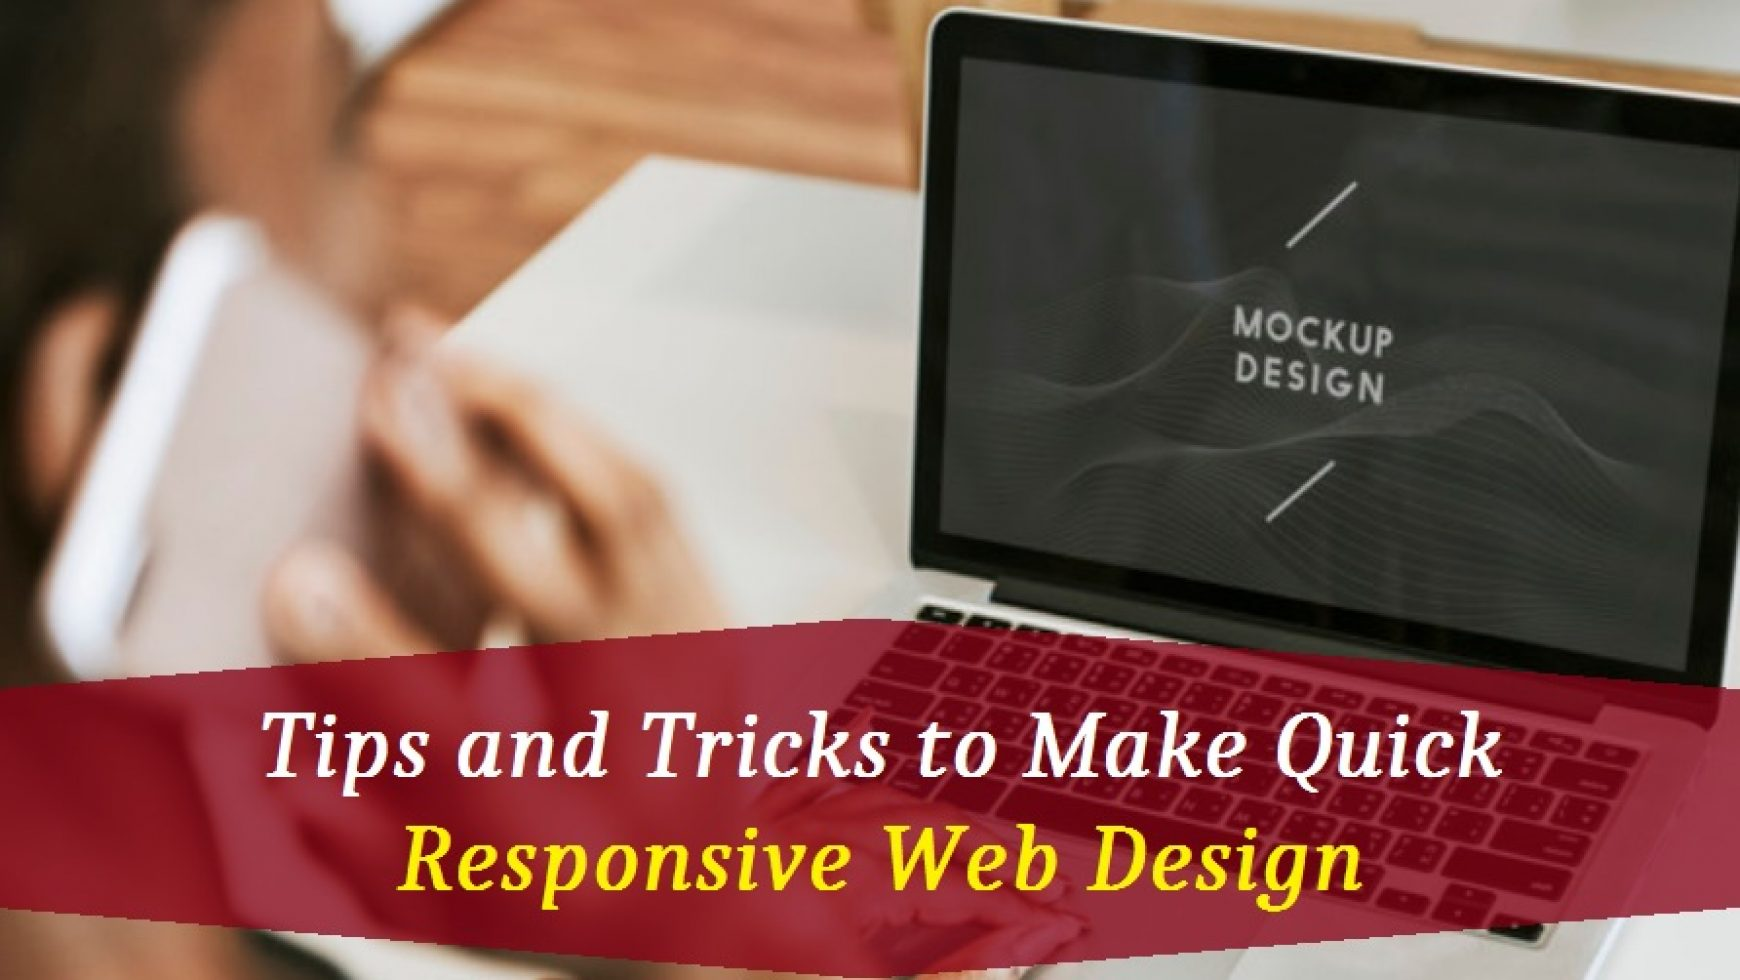 Tips and Tricks to Make Quick Responsive Web Design